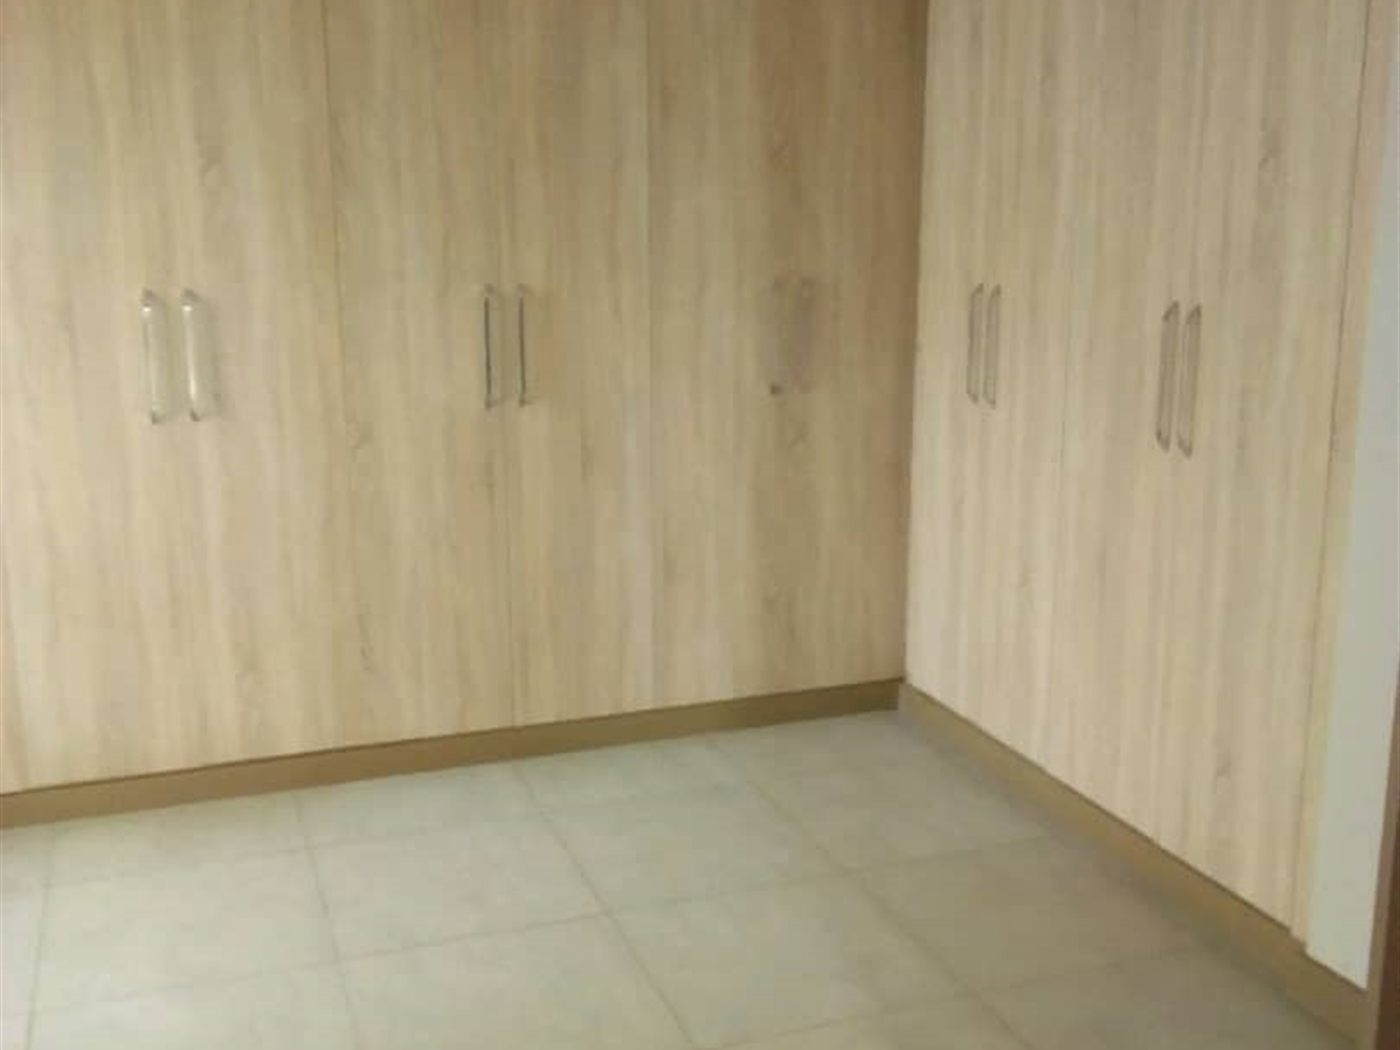 Penthouse for rent in Lugogo Kampala